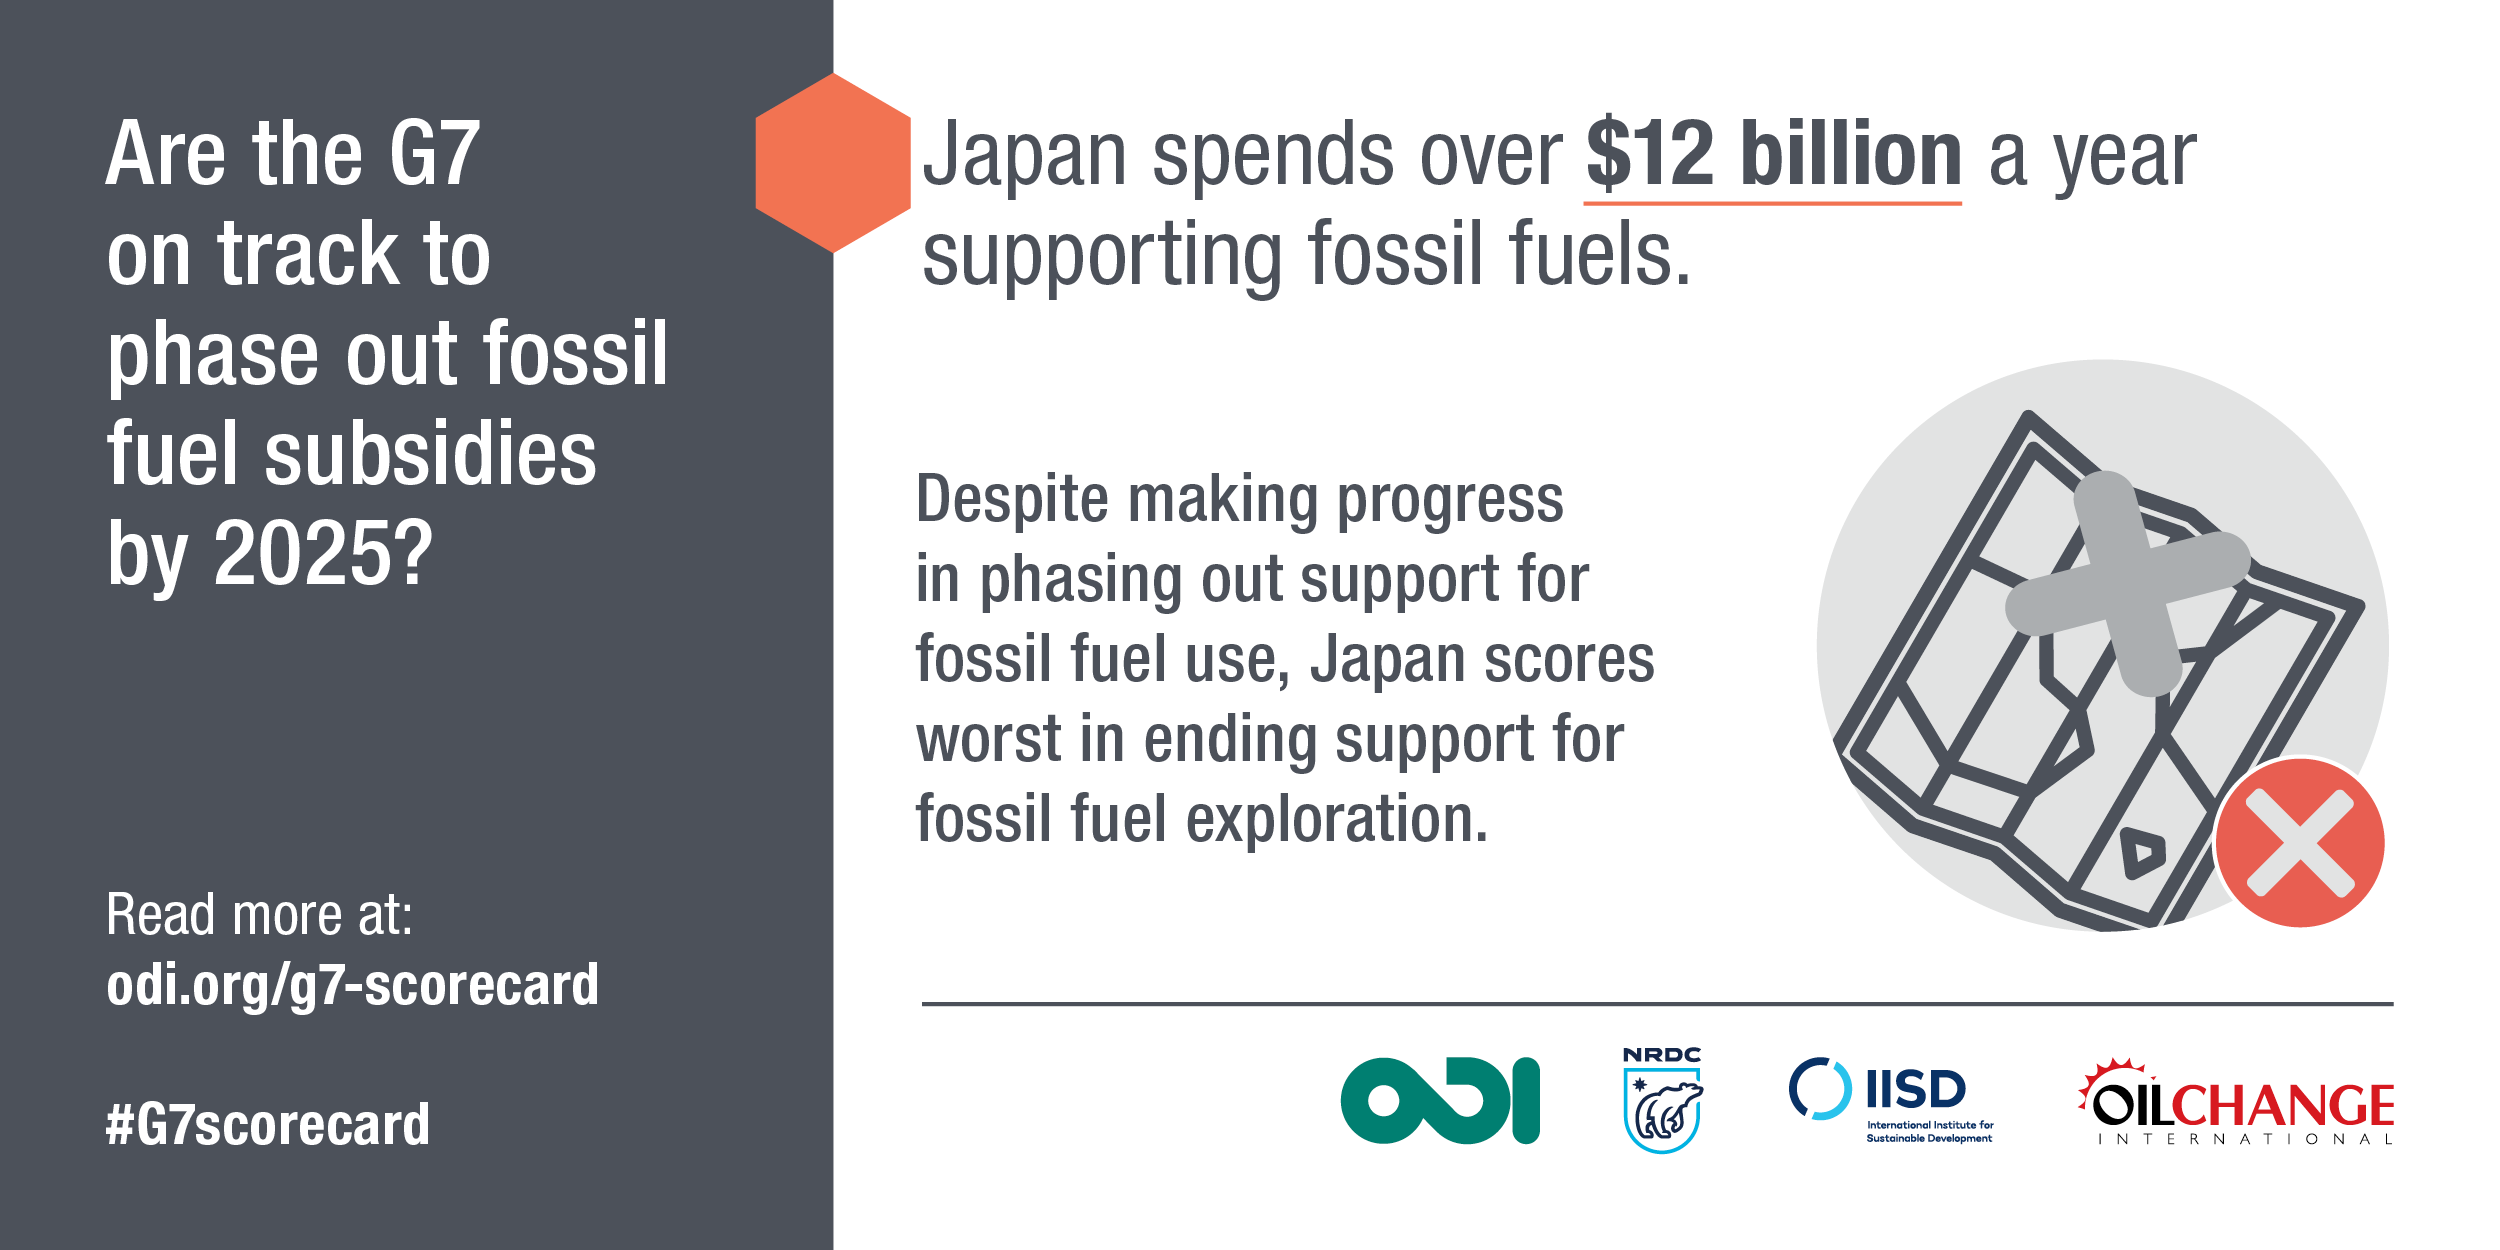 Japan spends over $12 billion a year supporting fossil fuels. Image: ODI